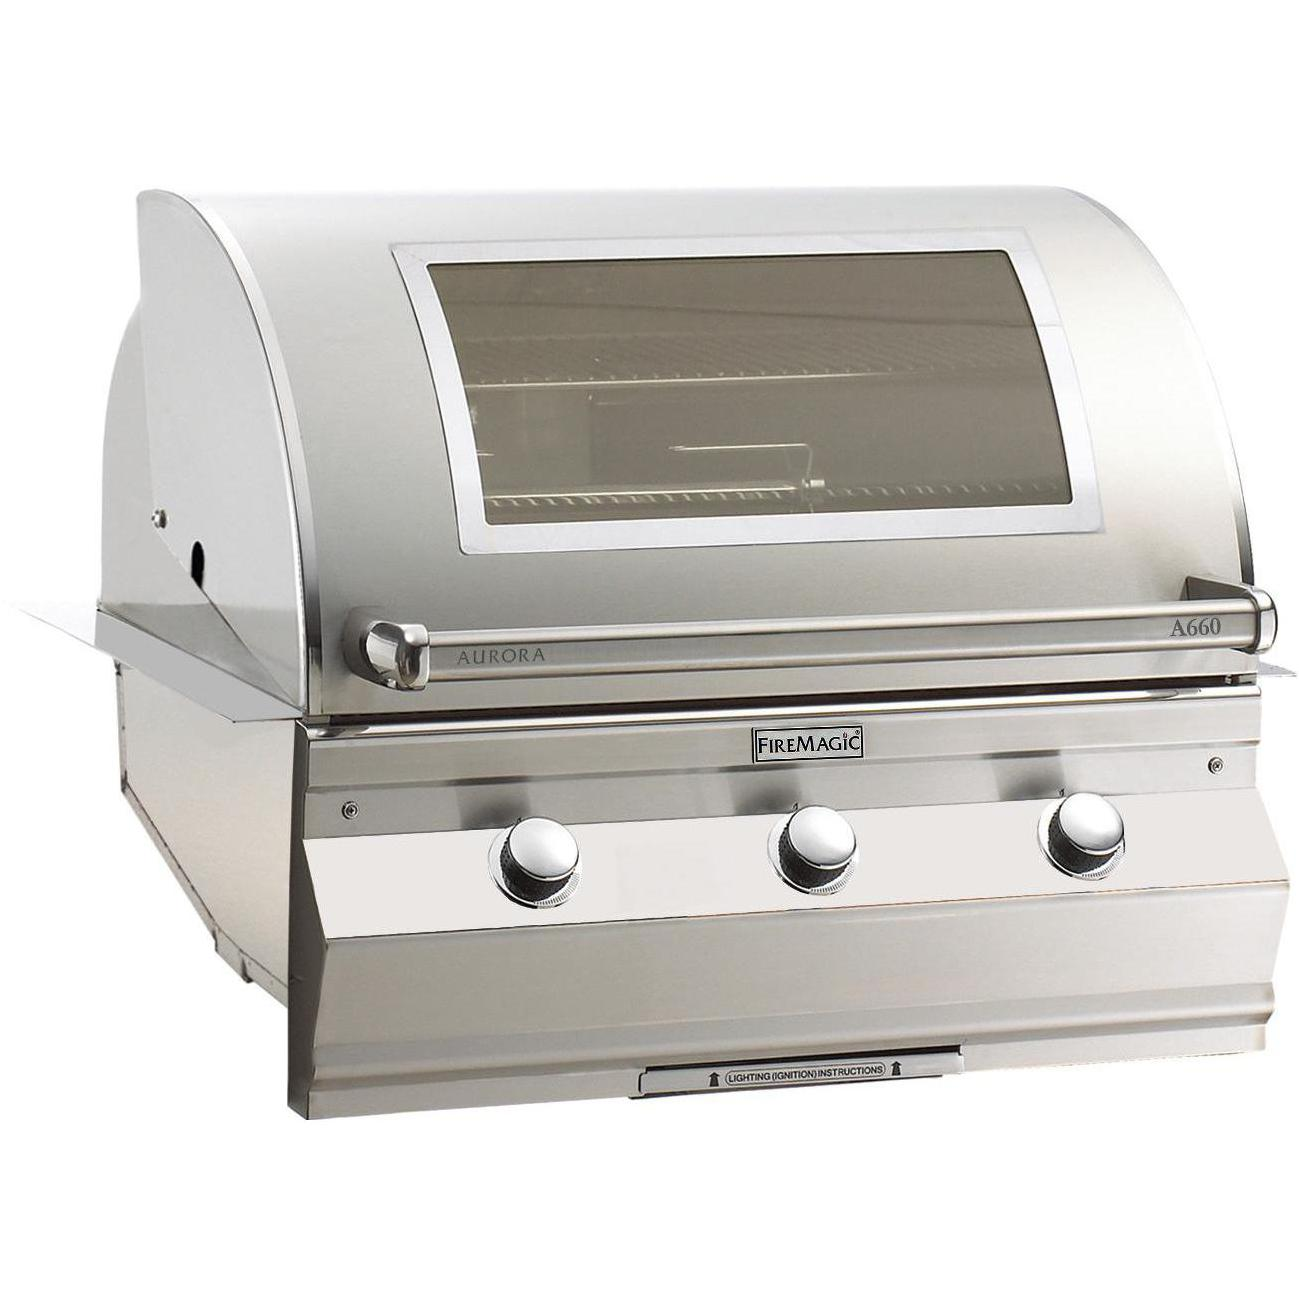 Aurora A660i Built-In Grill with Rotisserie